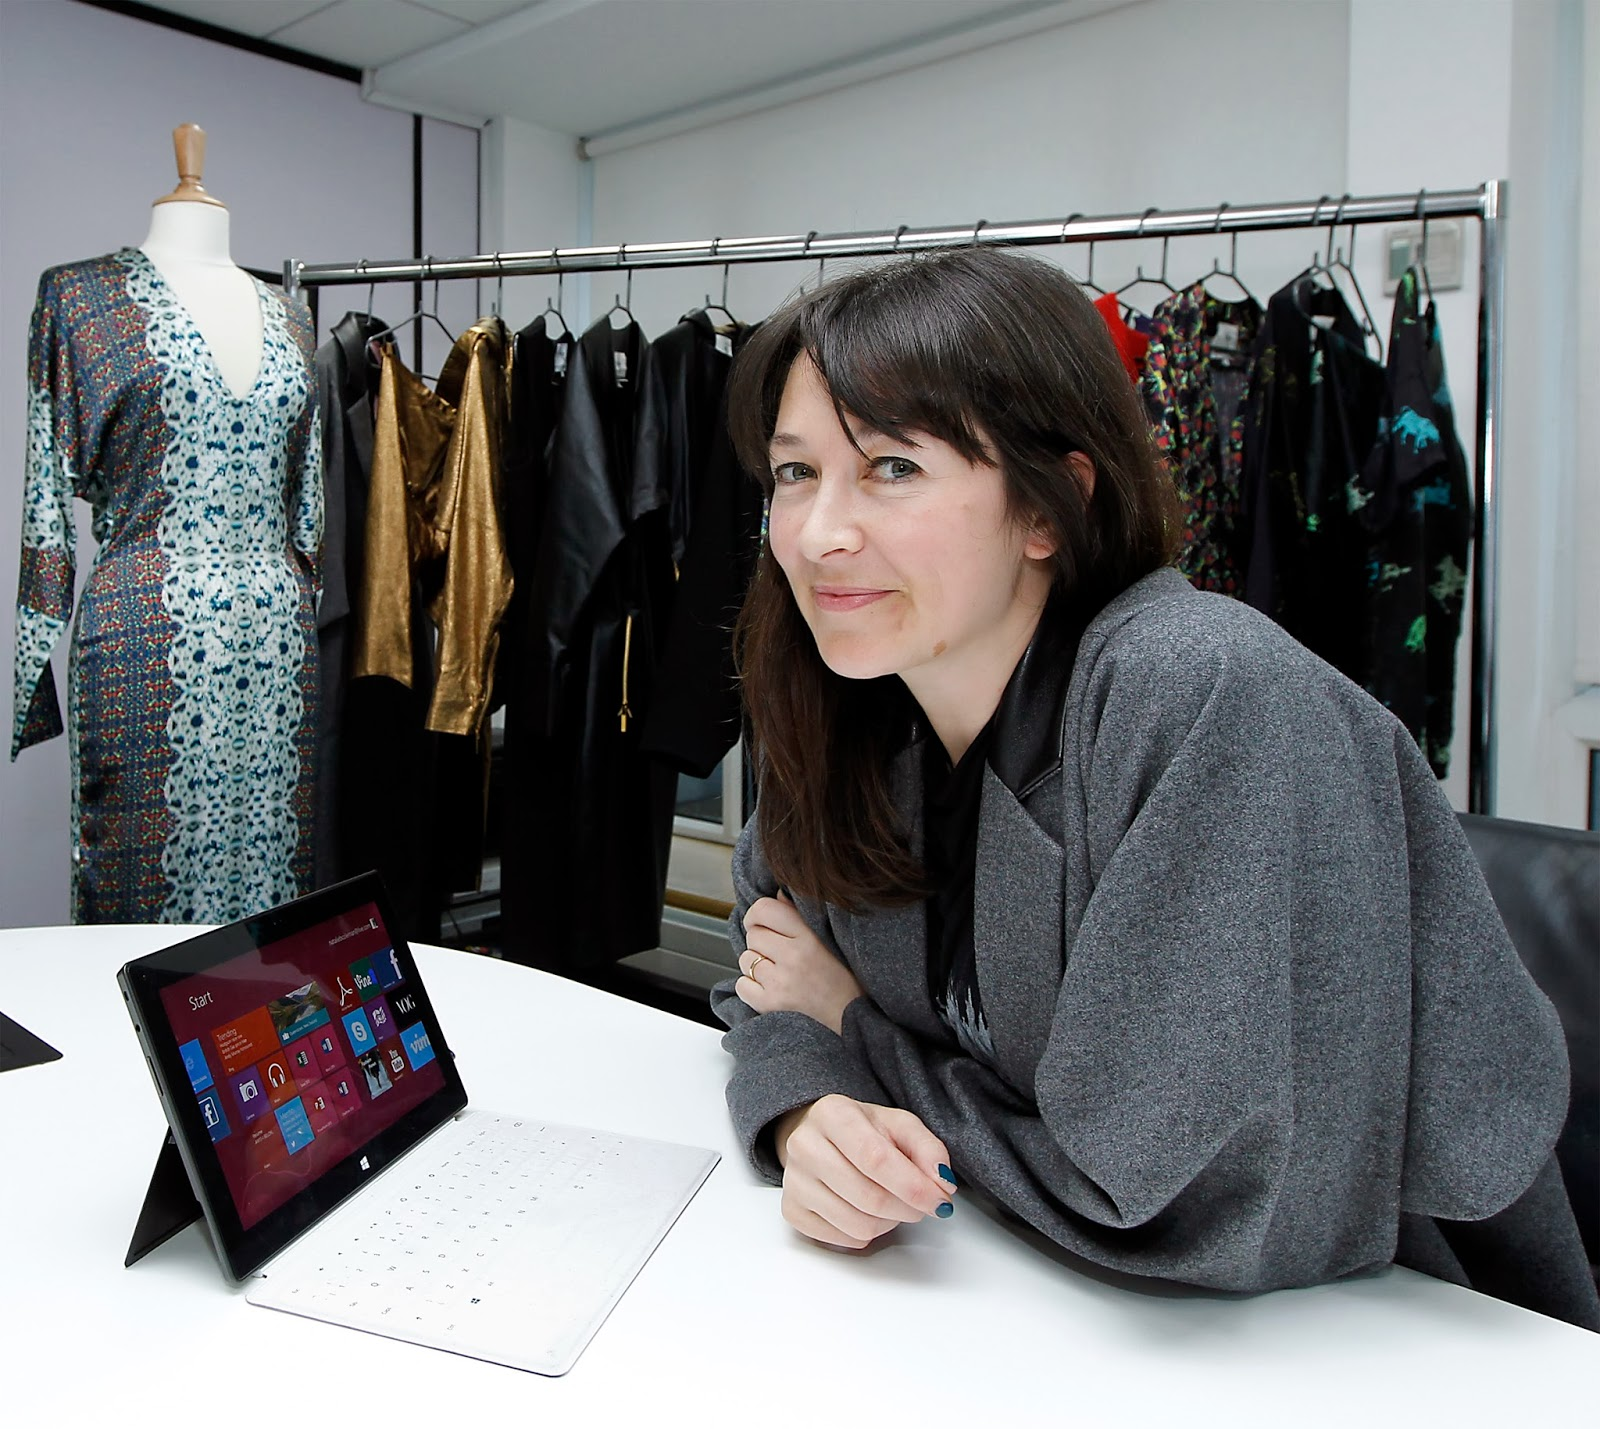 Anna K S Blog On Fashion In Dublin Interview With One Of Ireland S Top Fashion Designers Natalie B Coleman